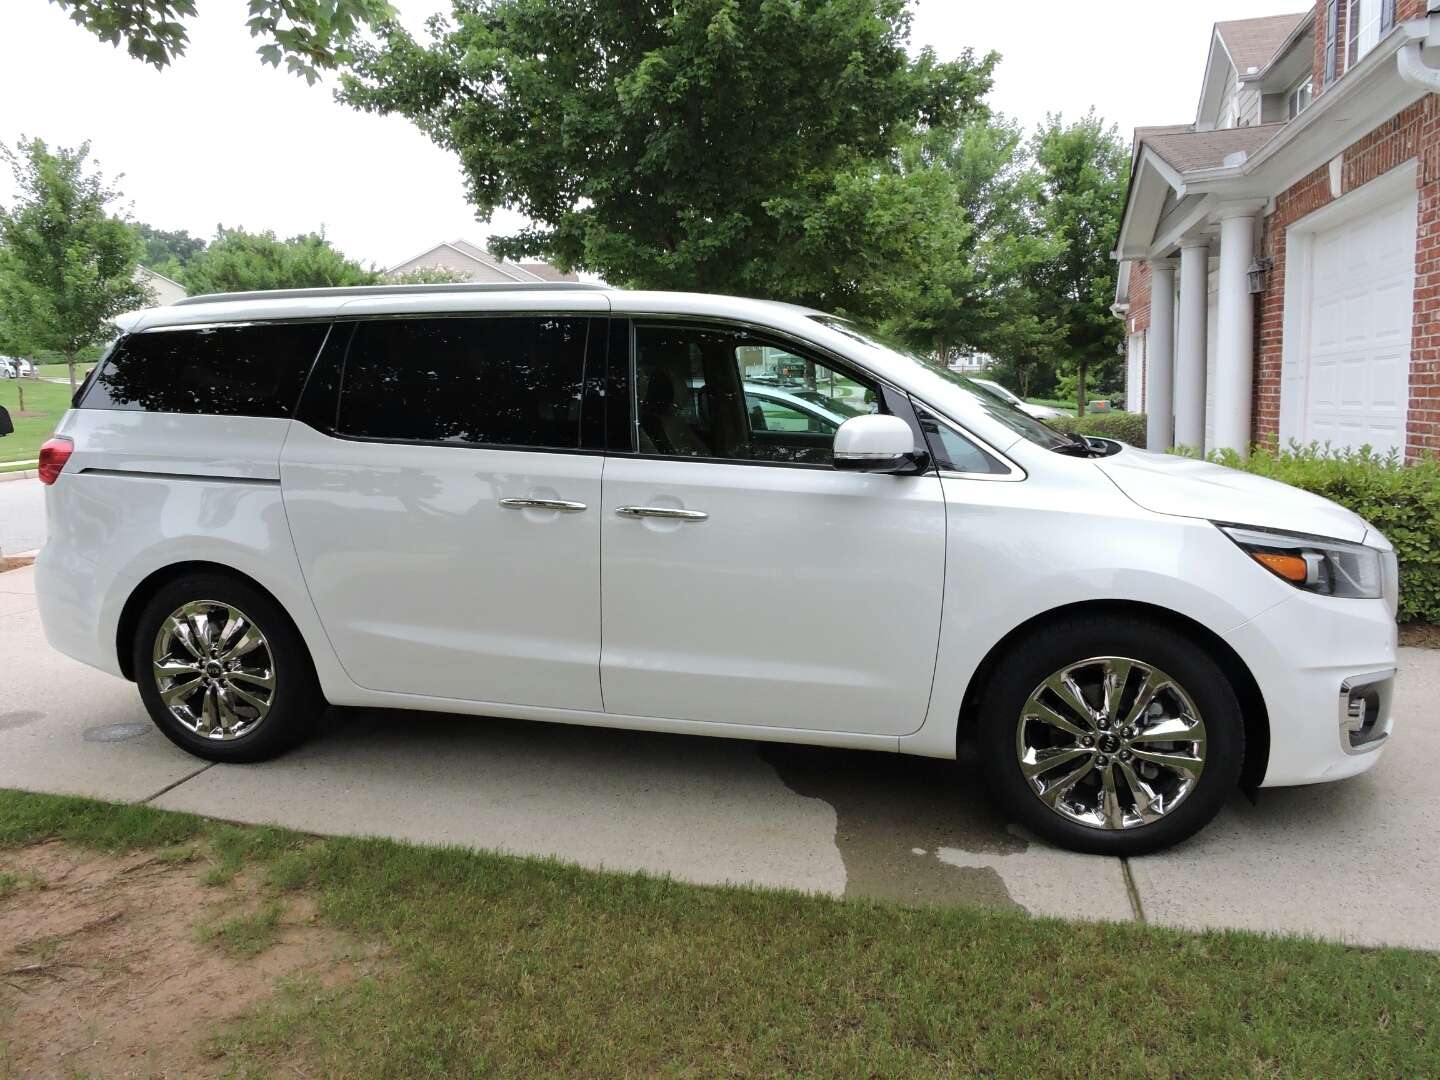 kia long review the sedona car term driving reviews test with days sxl road